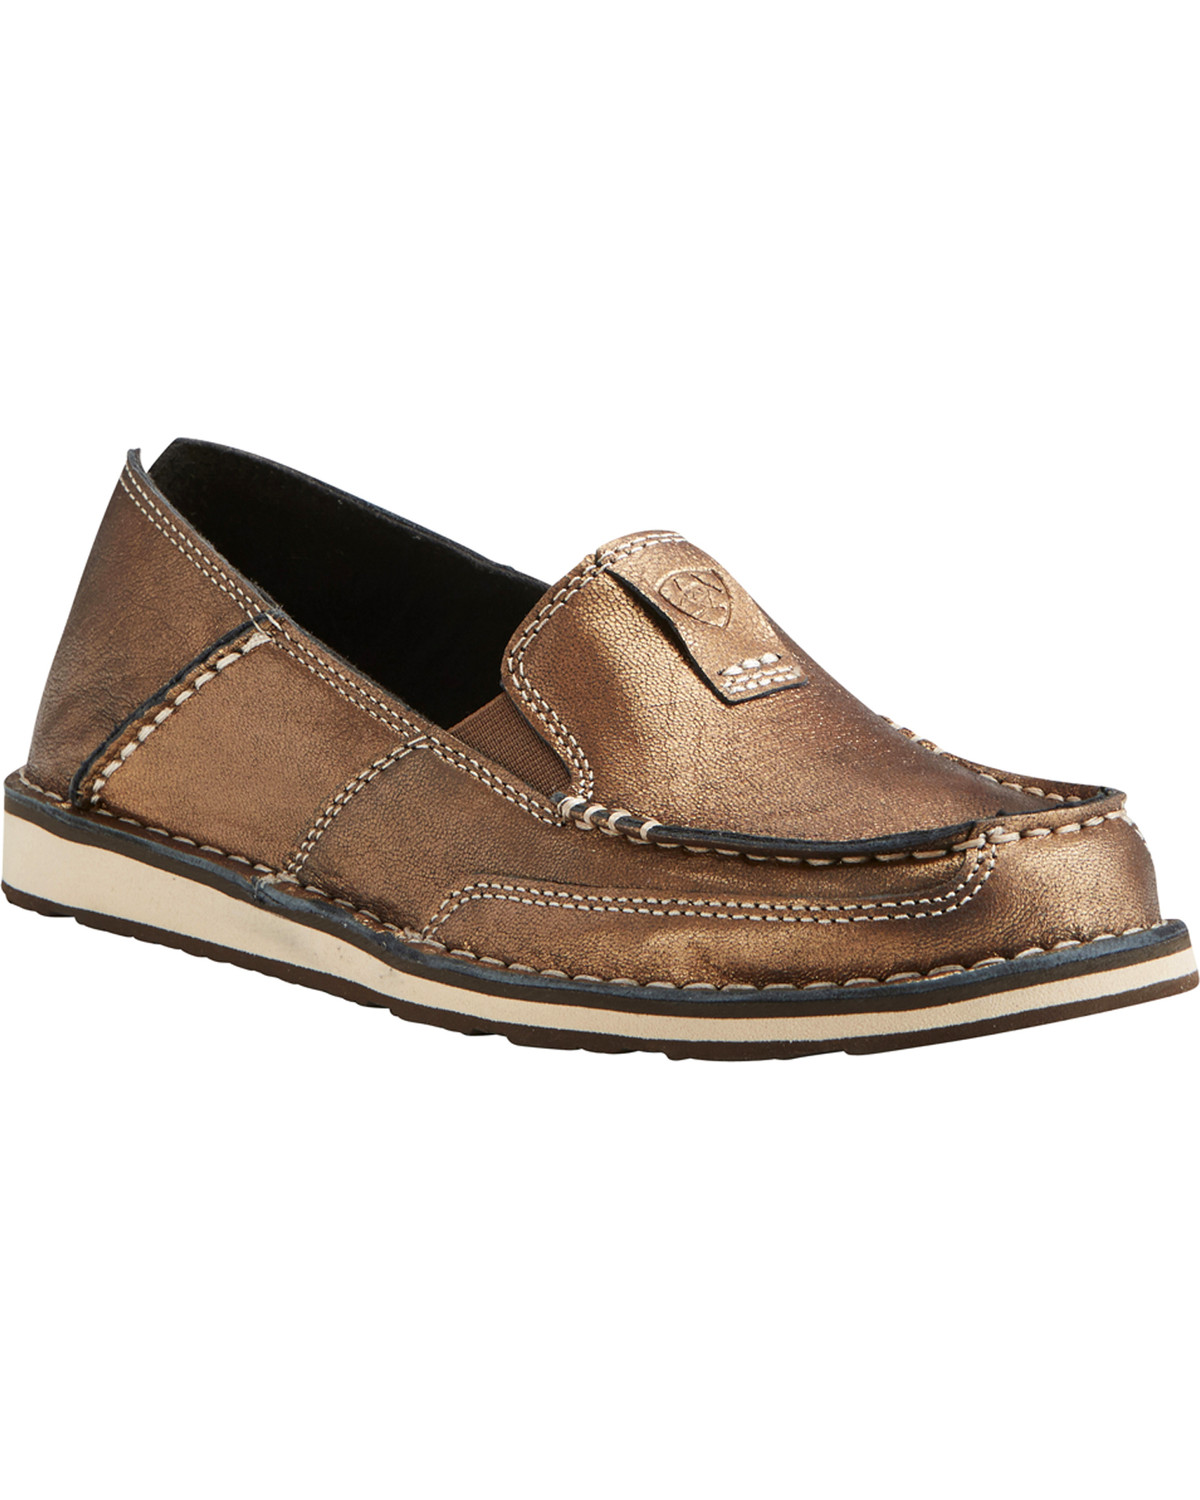 Ariat Cruiser Slip-Ons